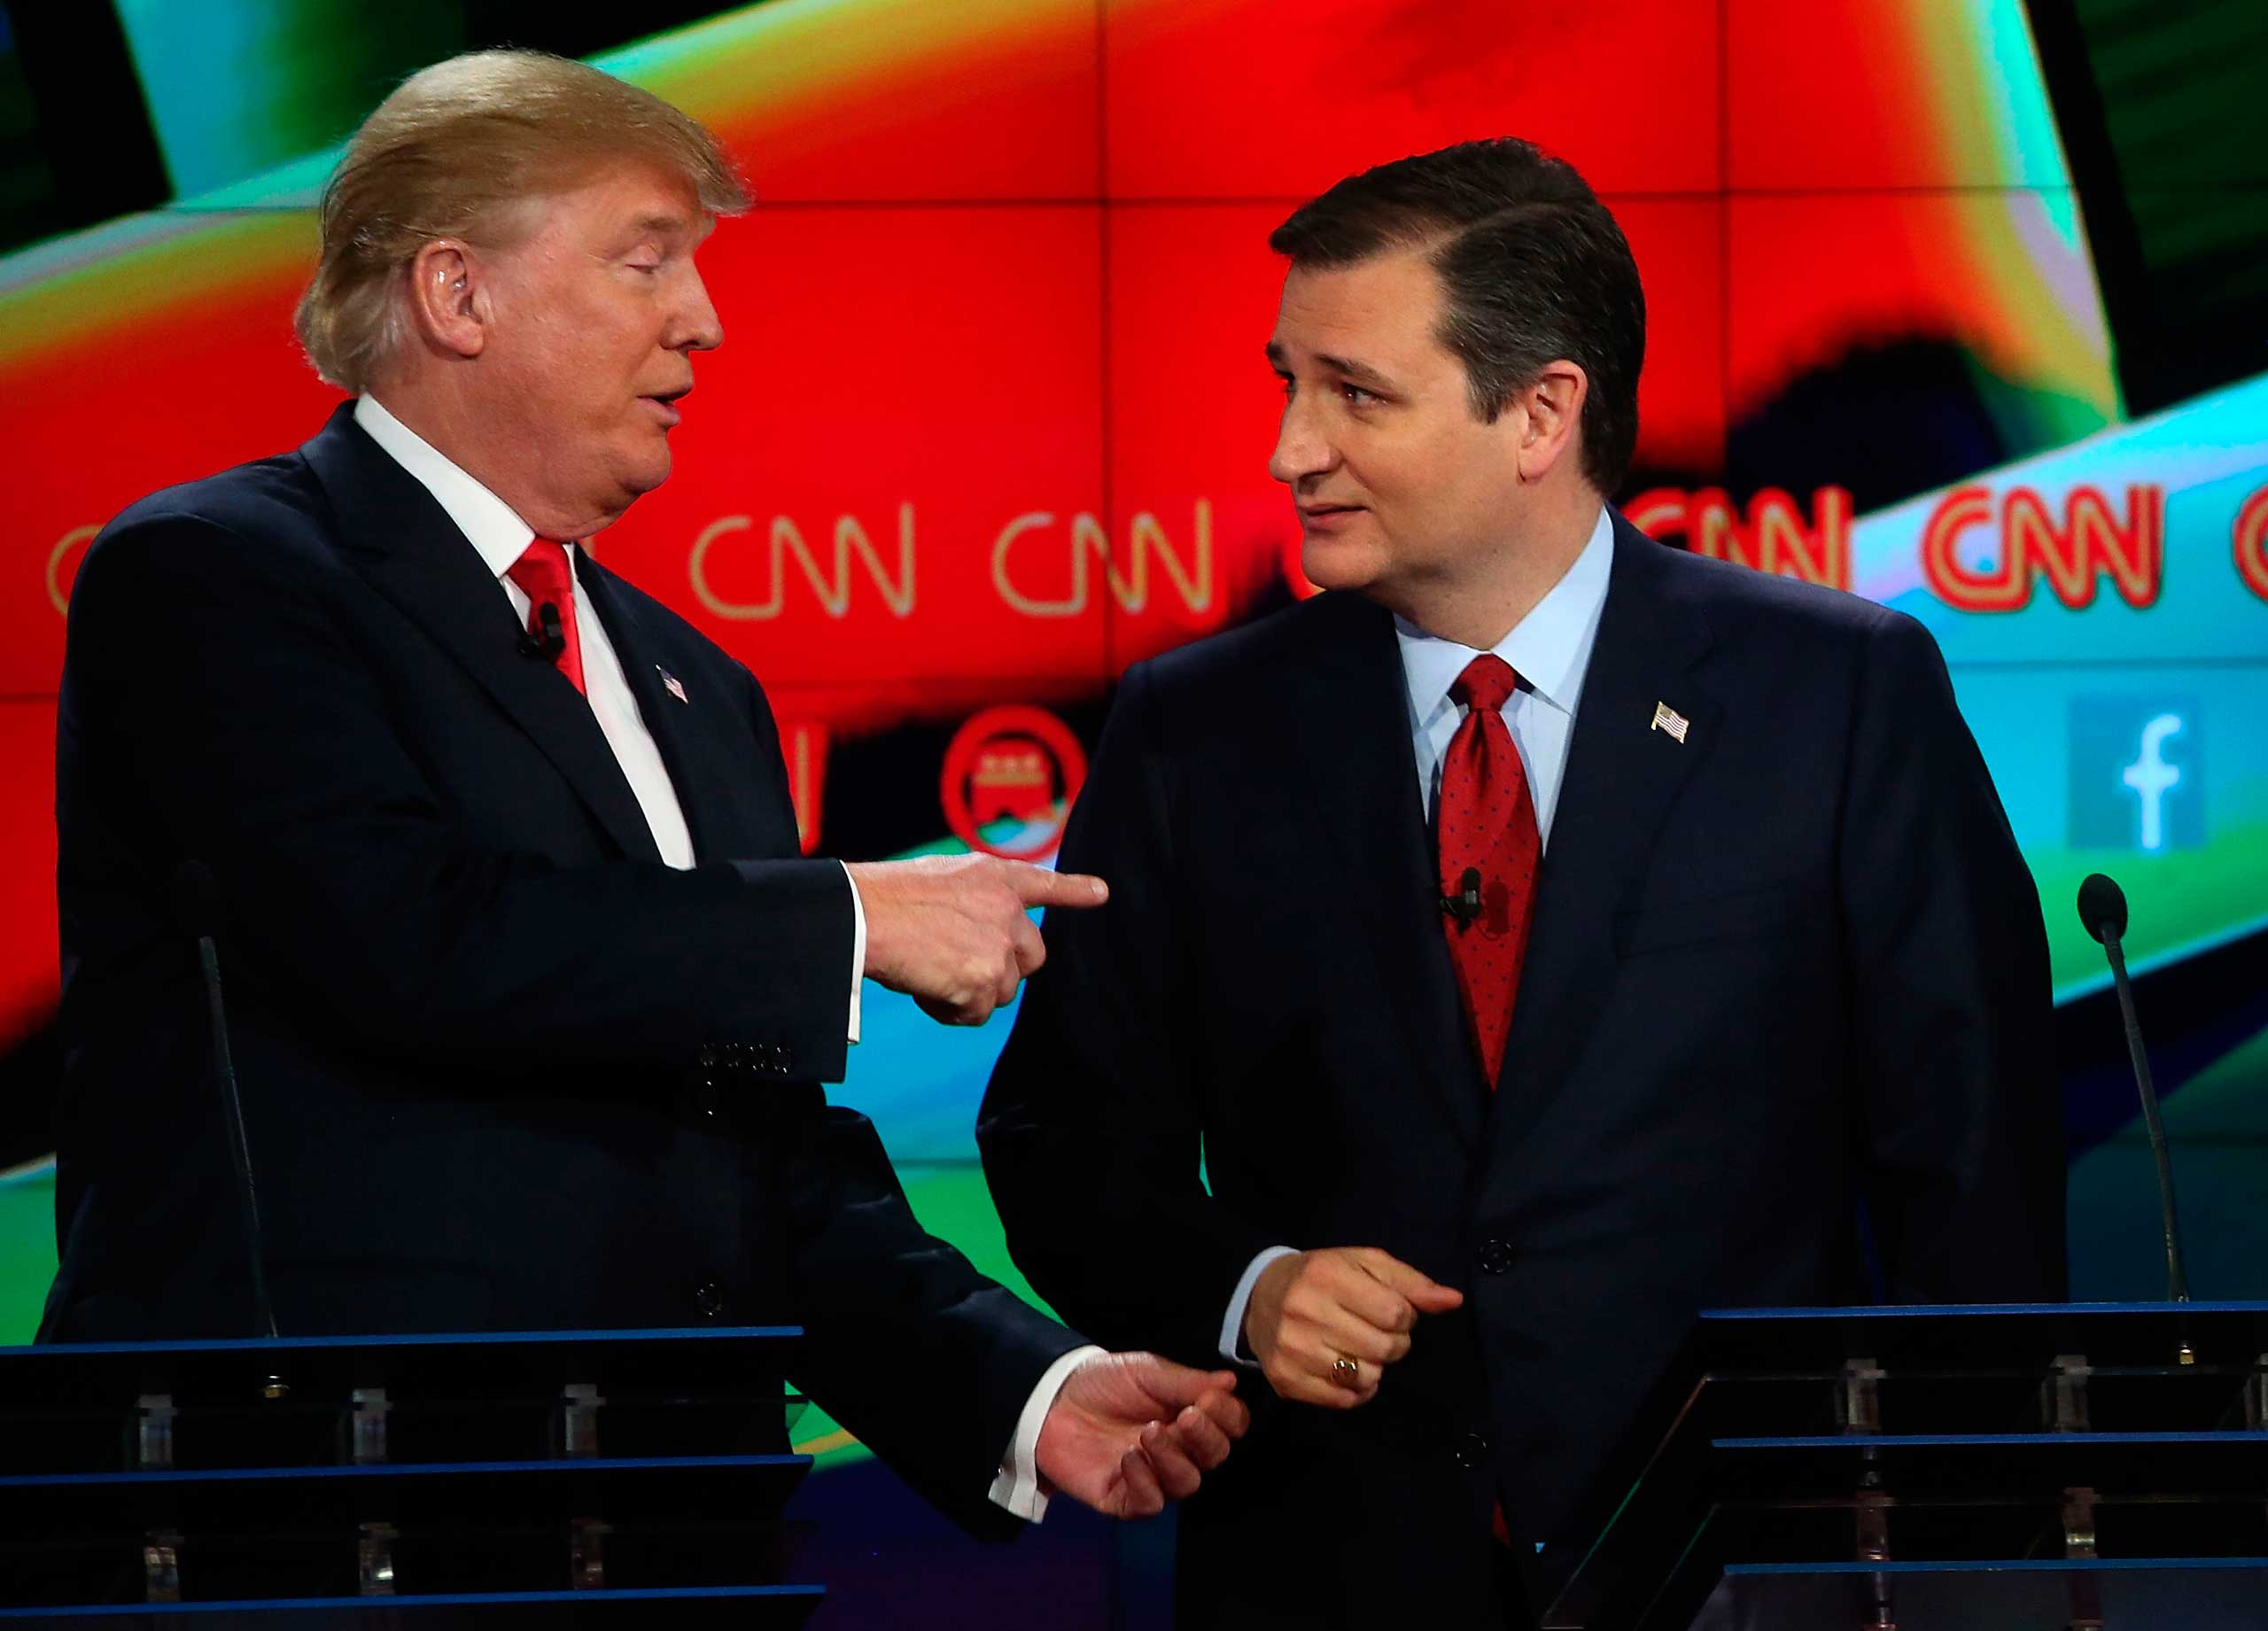 Republican presidential candidates Donald Trump and Sen. Ted Cruz (R-TX) interact at the conclusion of CNN's GOP presidential debate at The Venetian Las Vegas on Dec. 15, 2015.